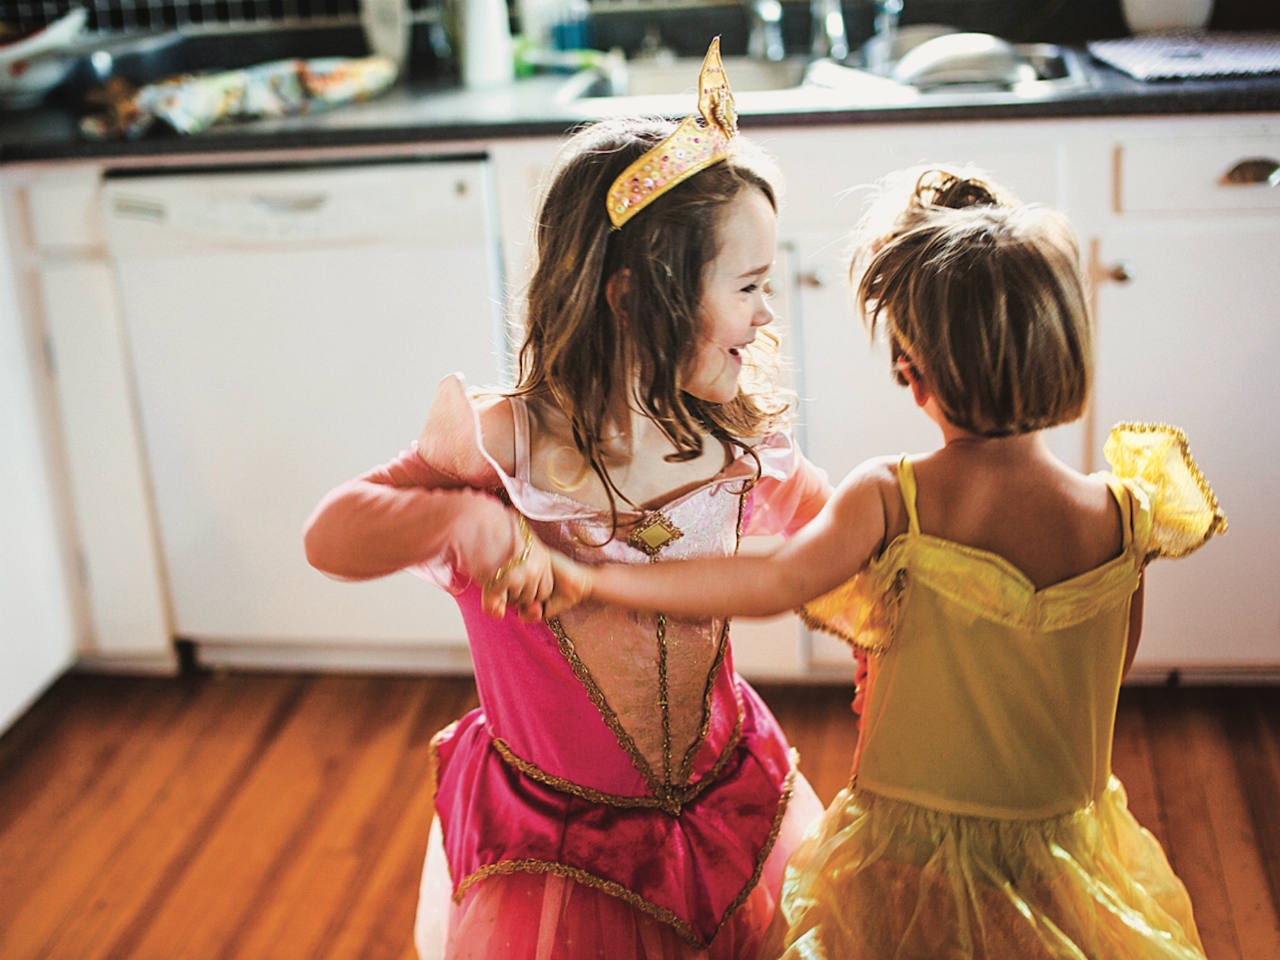 A little boy and girl dancing in princess dresses